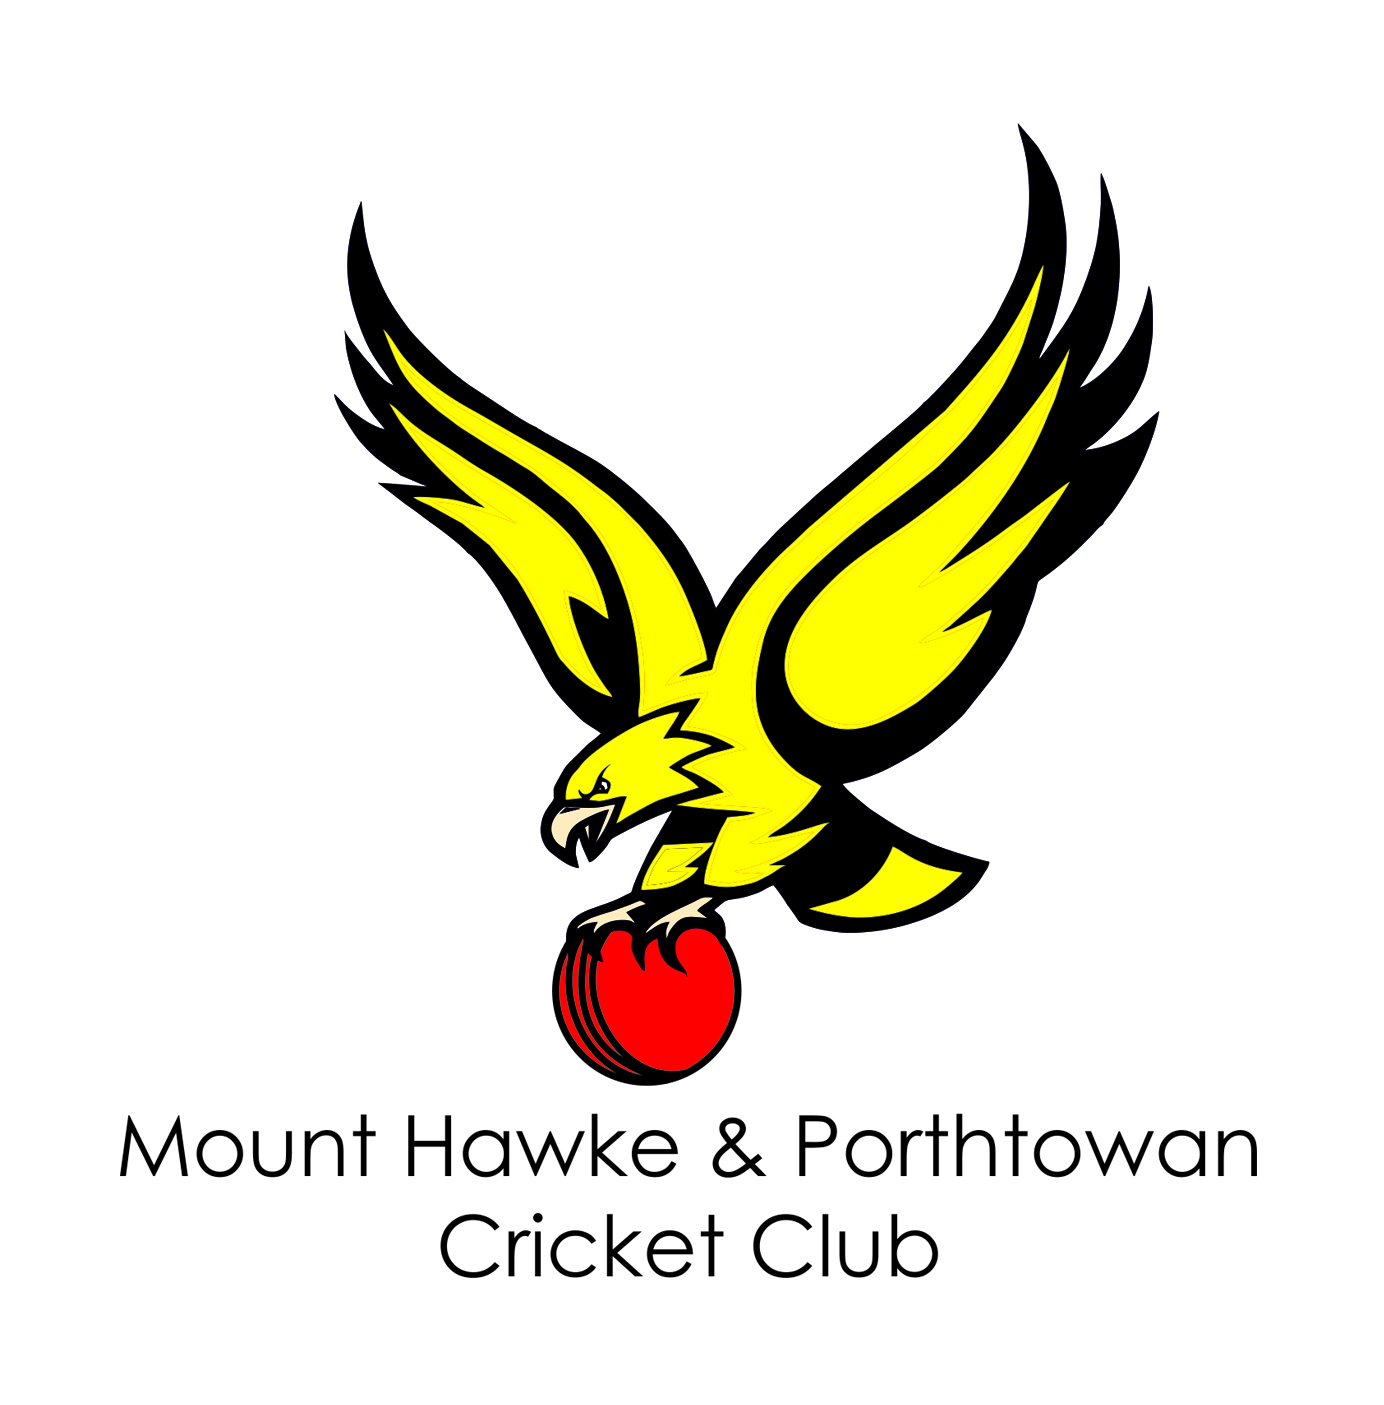 Mount Hawke & Porthtowan Cricket Club